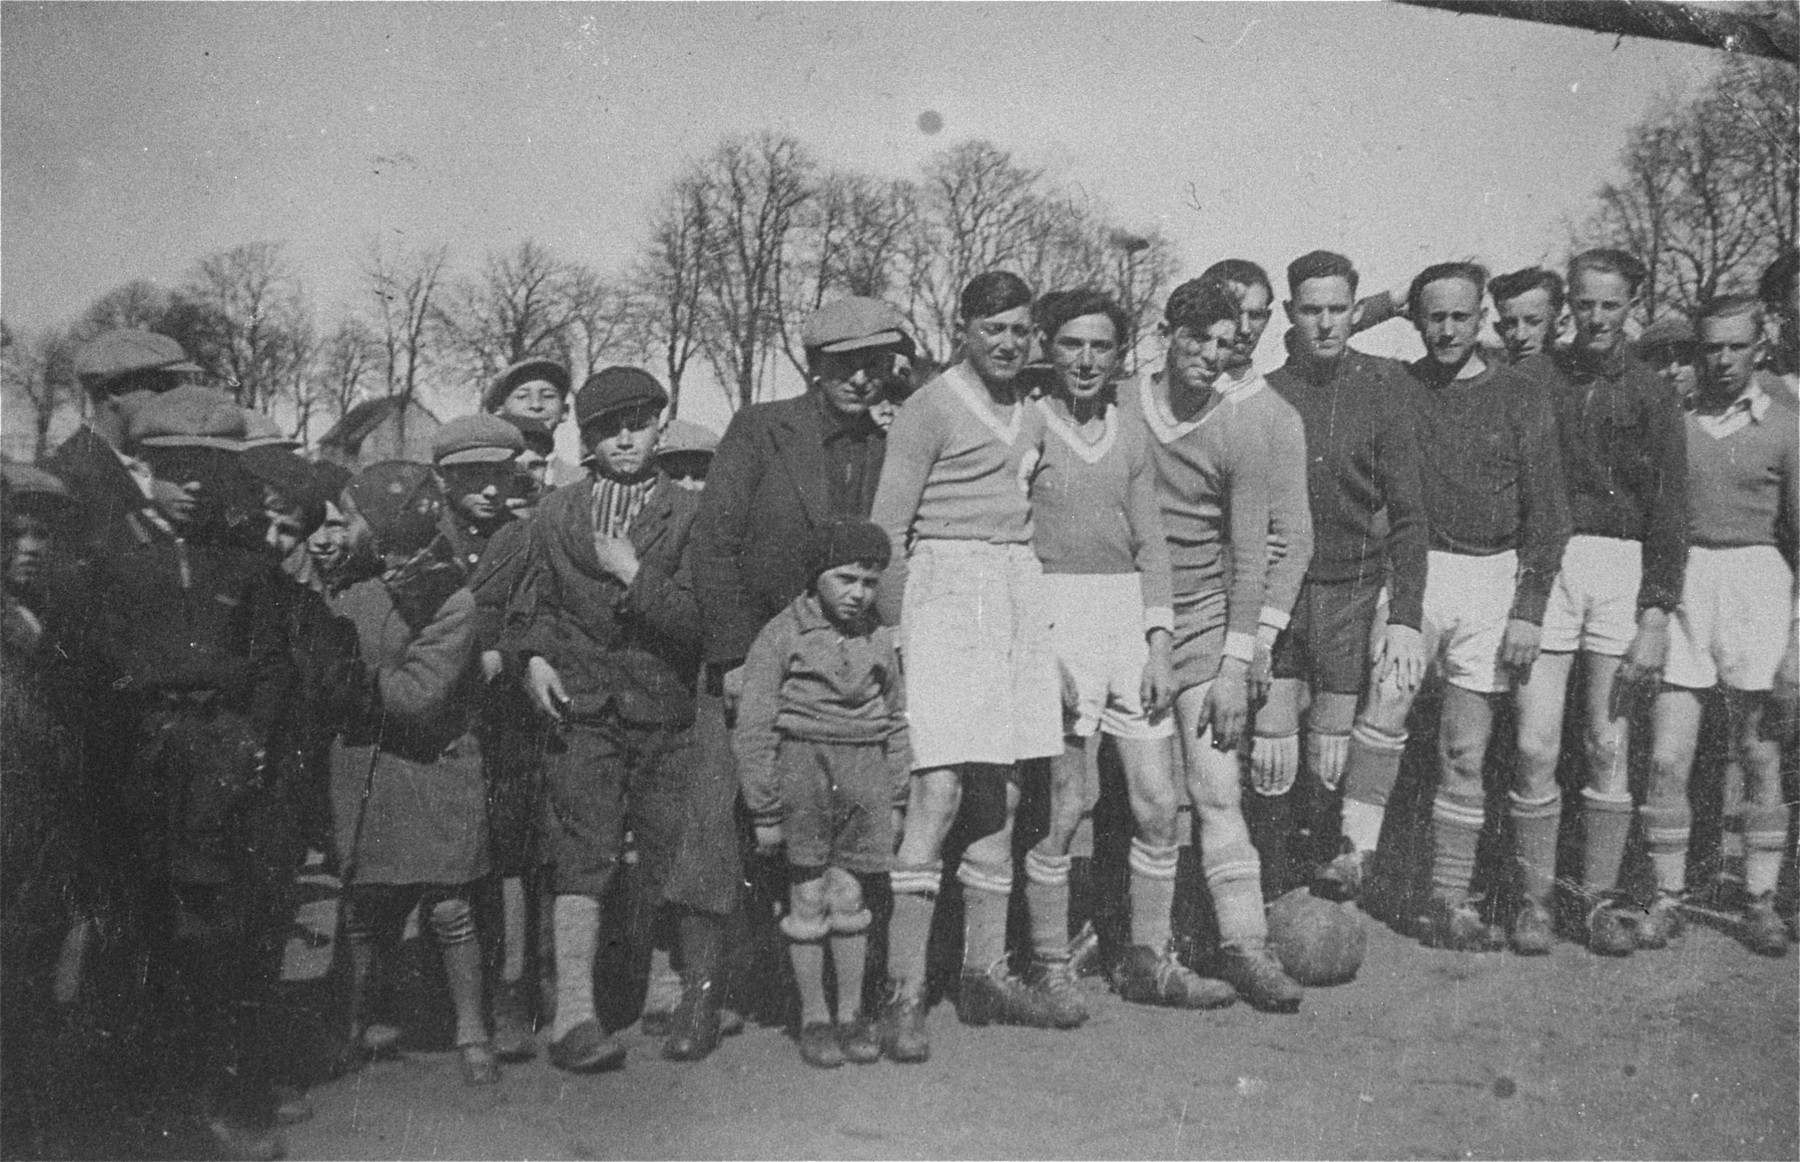 Members of a Jewish soccer team pose with family and friends in Gargzdai, Lithuania.